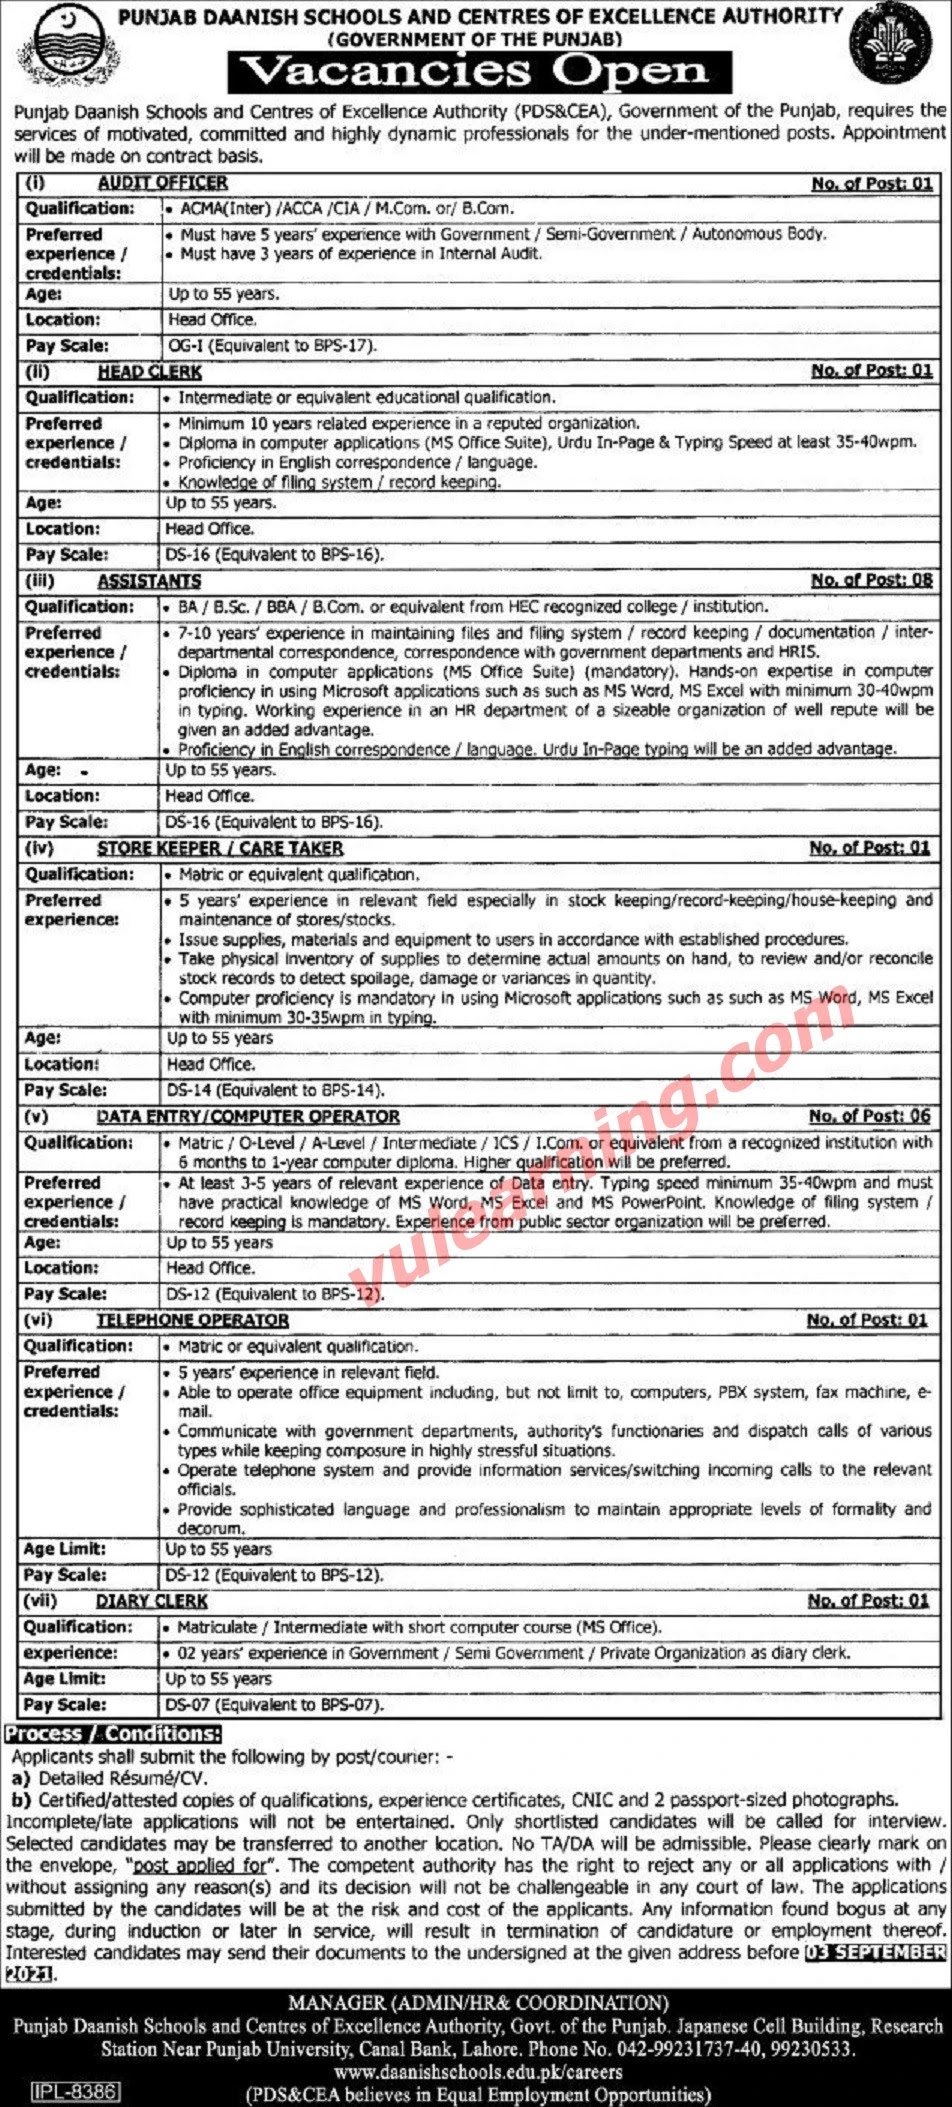 Punjab Daanish Schools & Centres of Excellence Authority PDS&CEA Jobs 2021